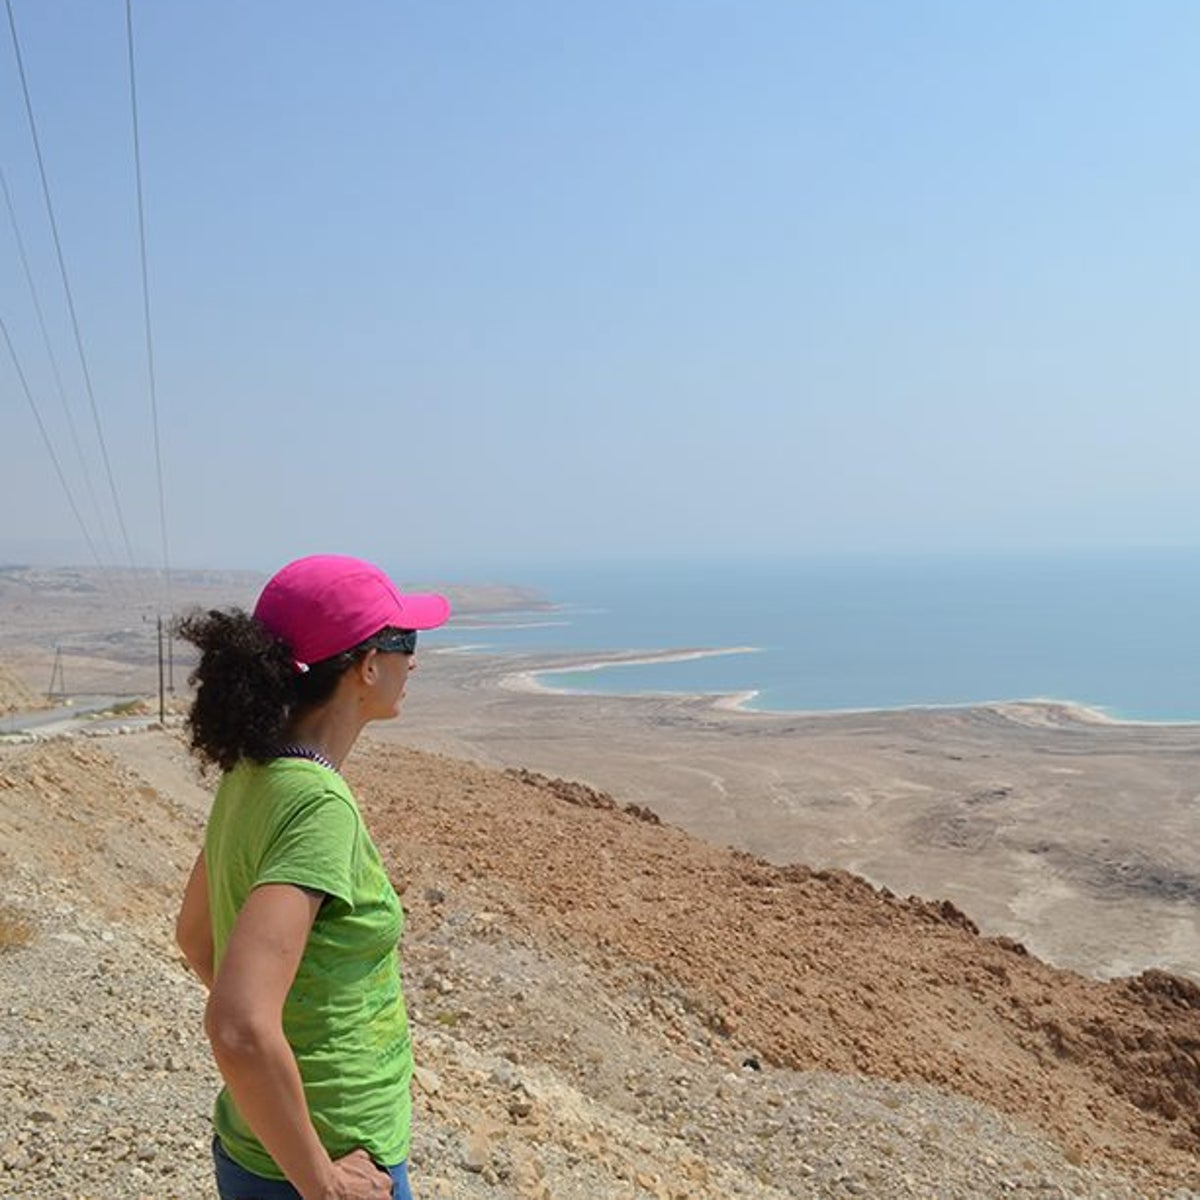 Lamont geochemist Yael Kiro views the Dead Sea. She led a study showing that sediments drilled from under the sea's bed indicate regional rainfall plummeted tens of thousands of years ago.